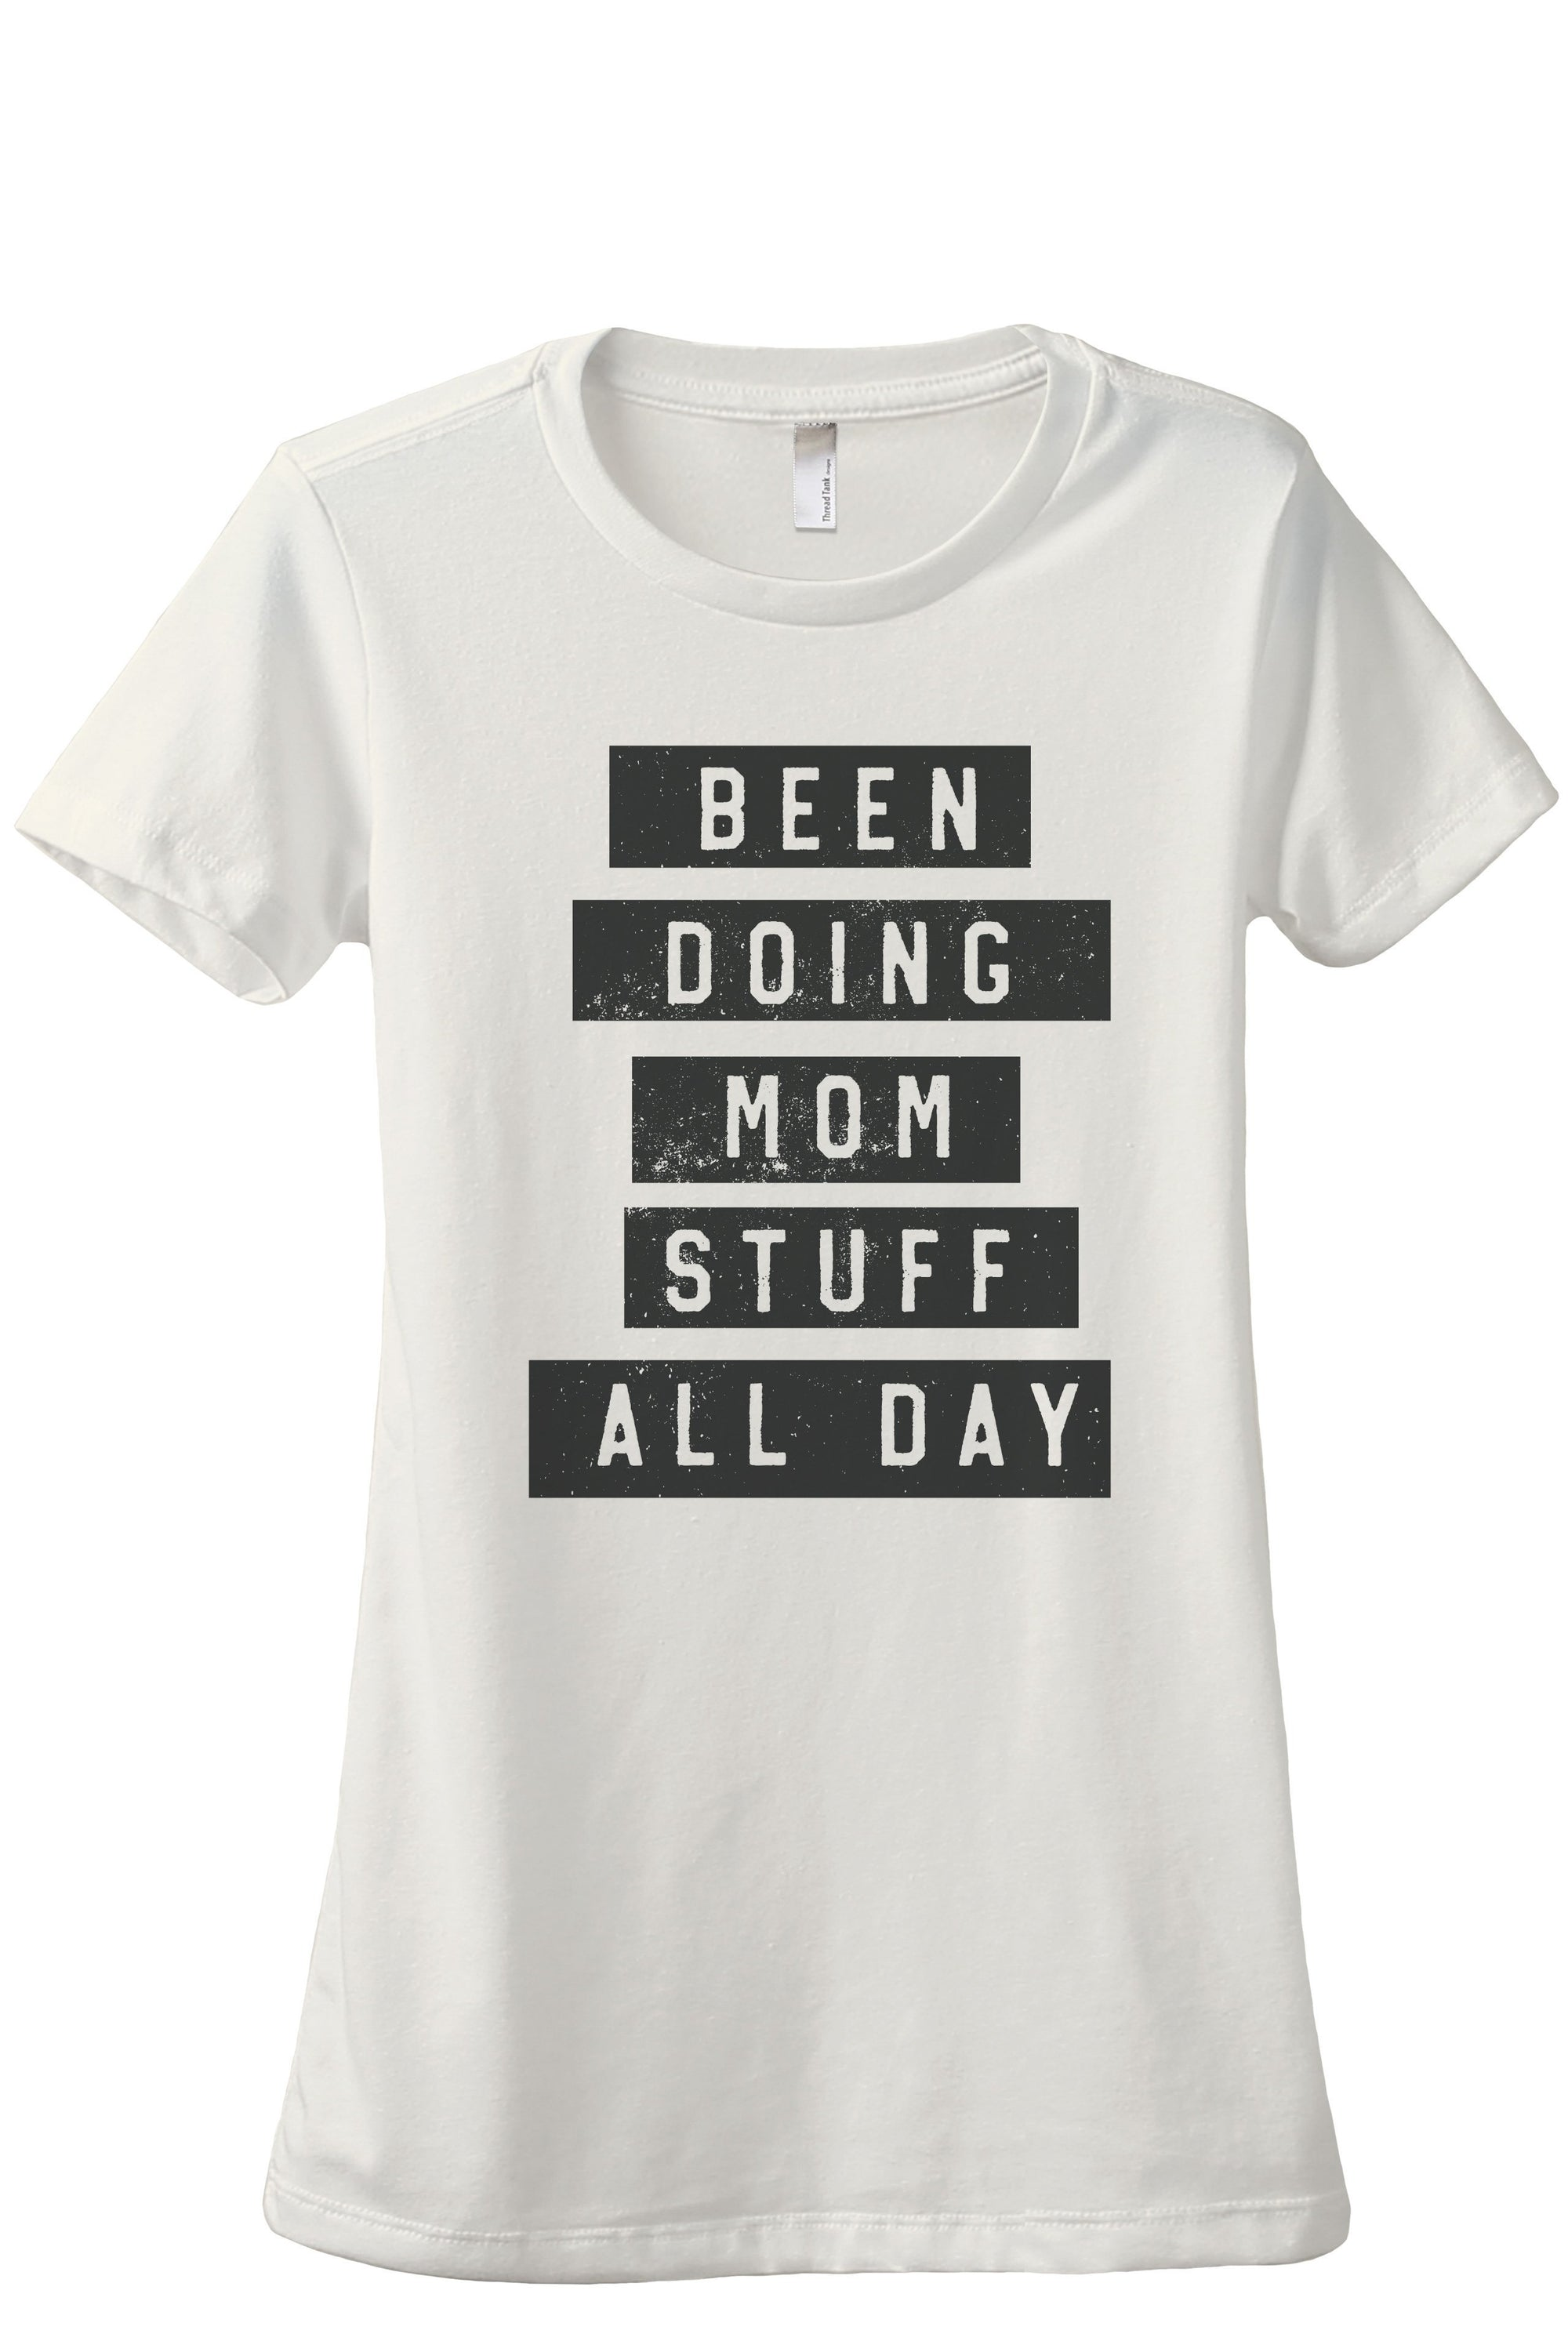 Been Doing Mom Stuff All Day Women's Relaxed Crewneck T-Shirt Top Tee Charcoal Grey